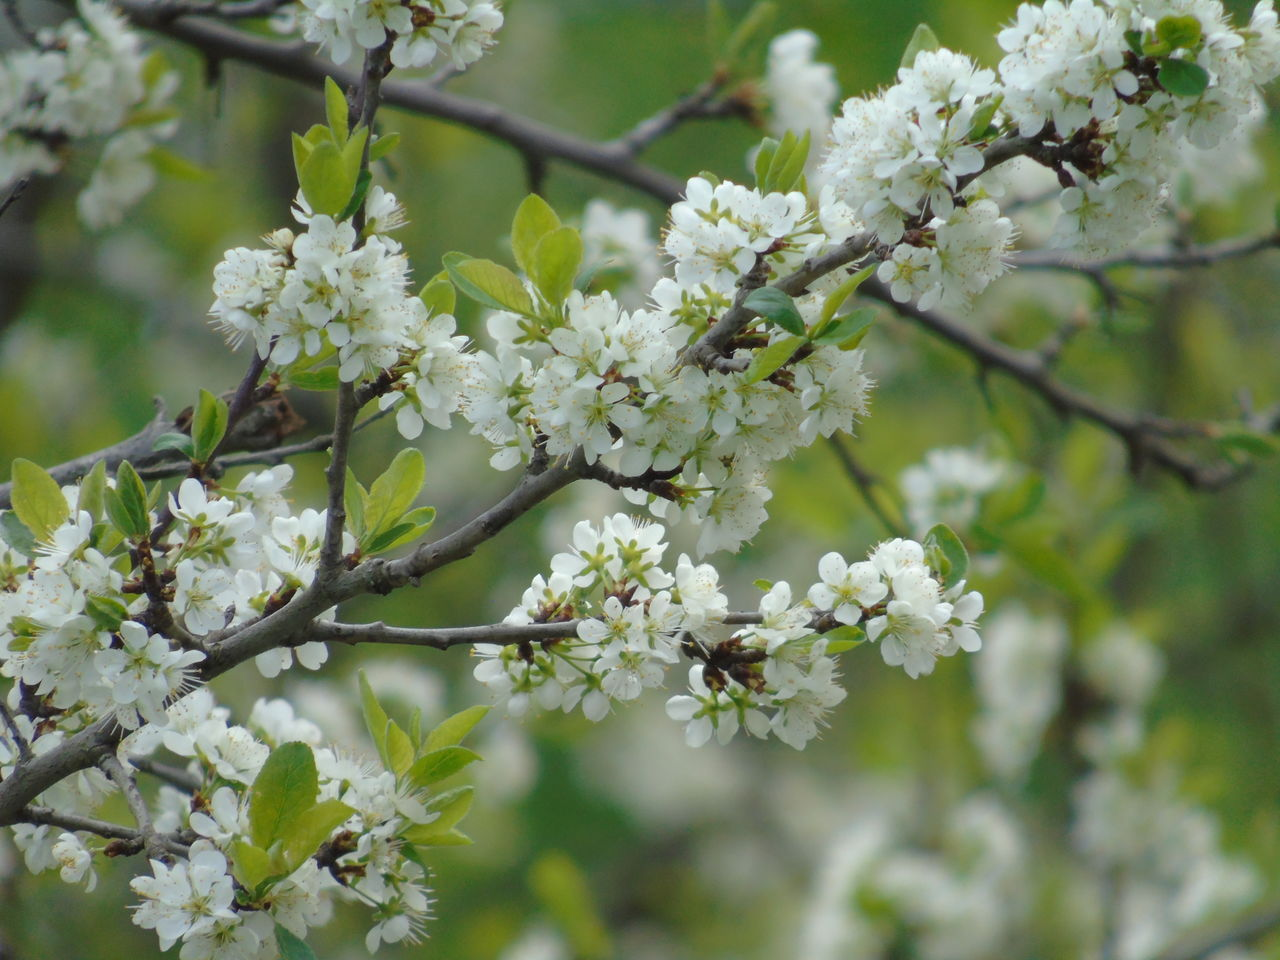 flower, growth, blossom, nature, tree, white color, fragility, branch, apple blossom, beauty in nature, freshness, botany, springtime, no people, spring, day, outdoors, blooming, close-up, flower head